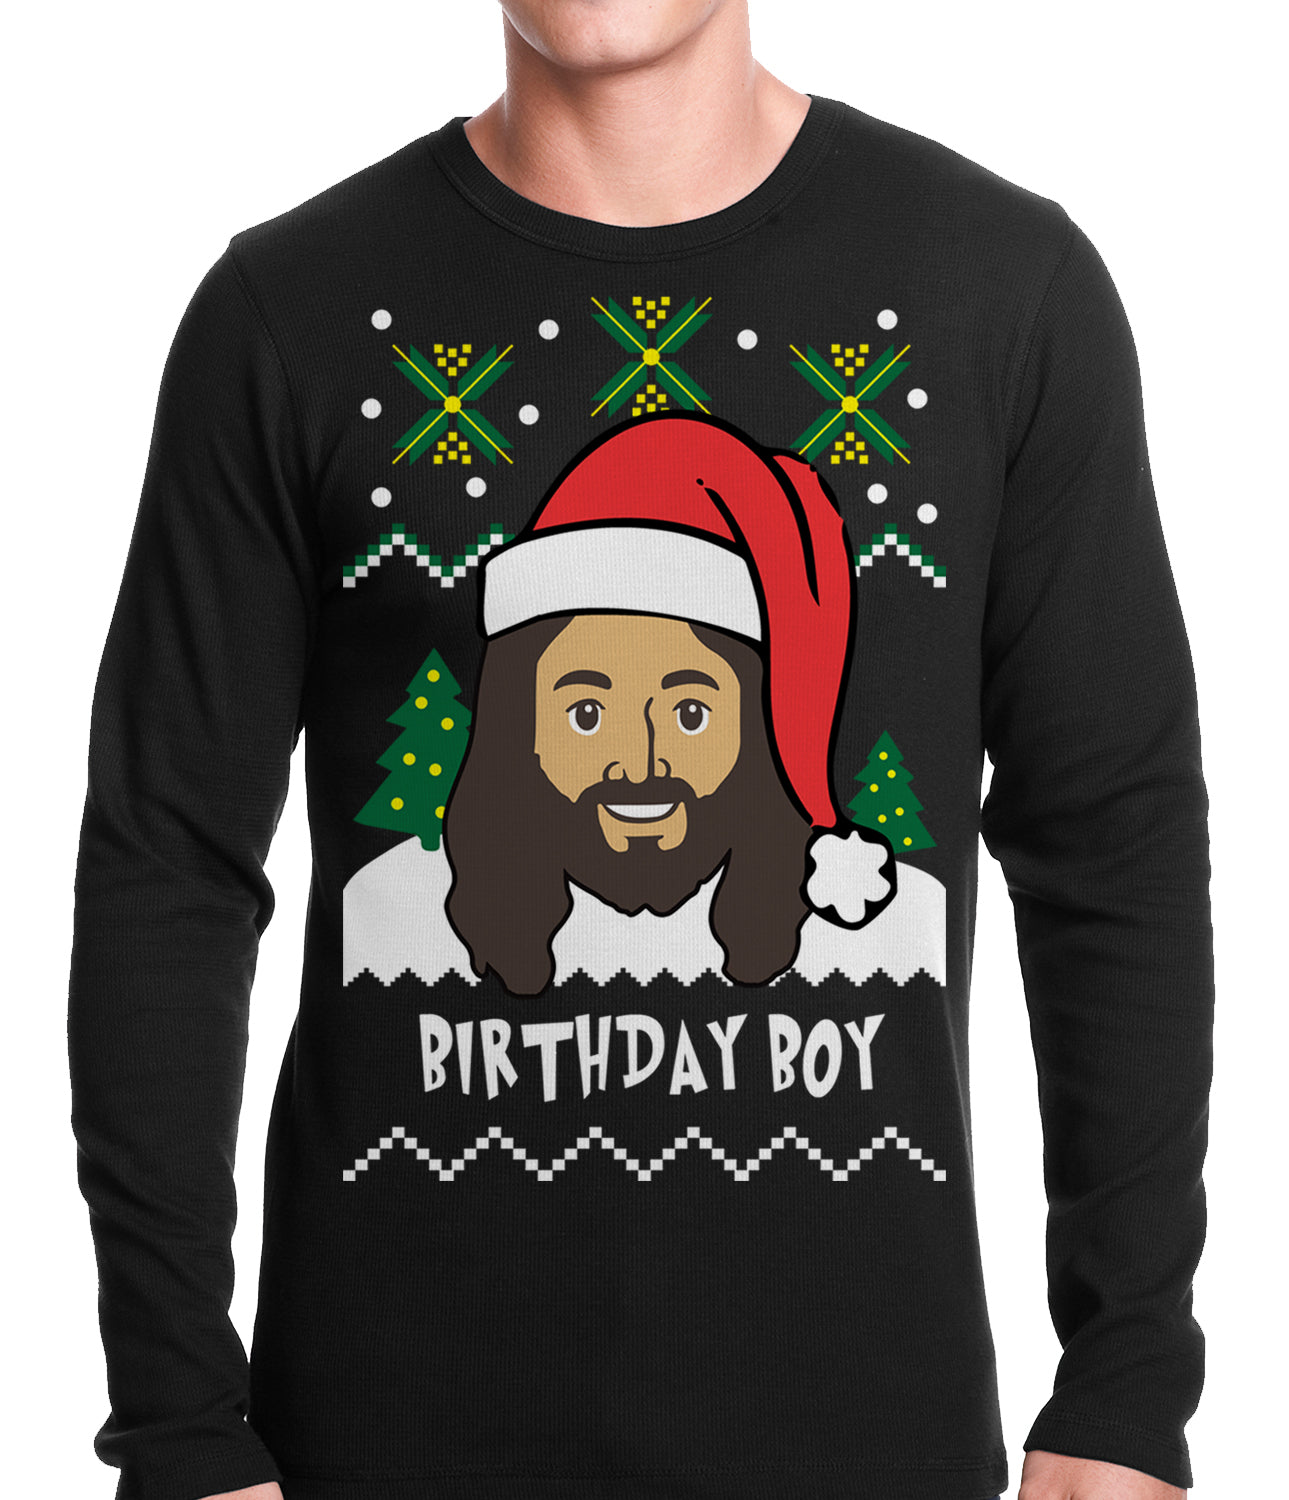 Jesus - Birthday Boy - Ugly Christmas Thermal Shirt – Bewild